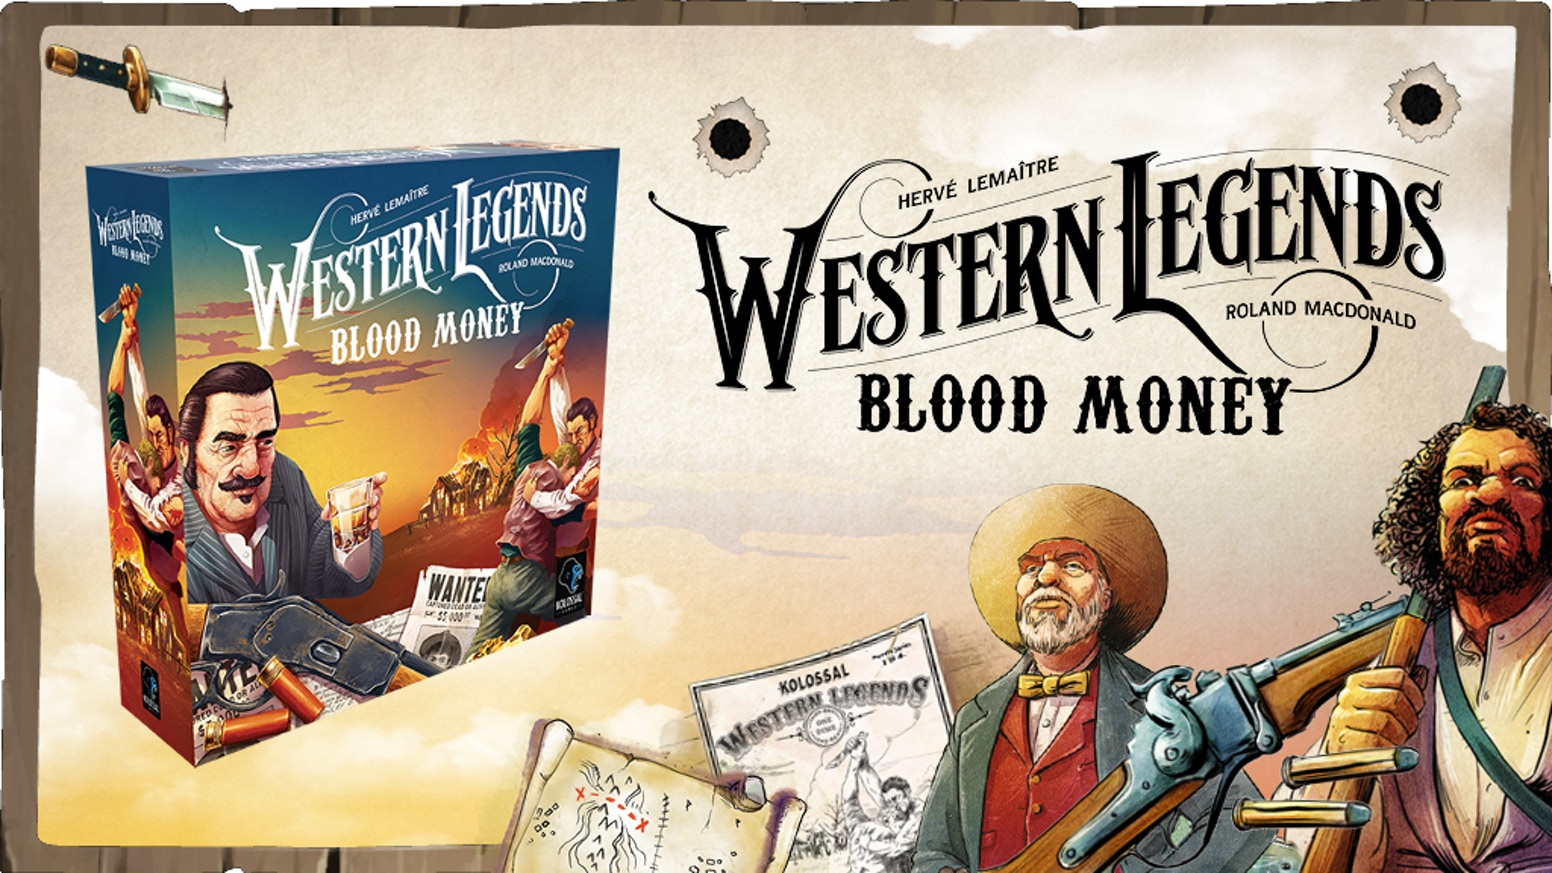 Enter the final chapter in the Western Legends saga, Blood Money. Adventure lovers, add the risk you have been looking for!